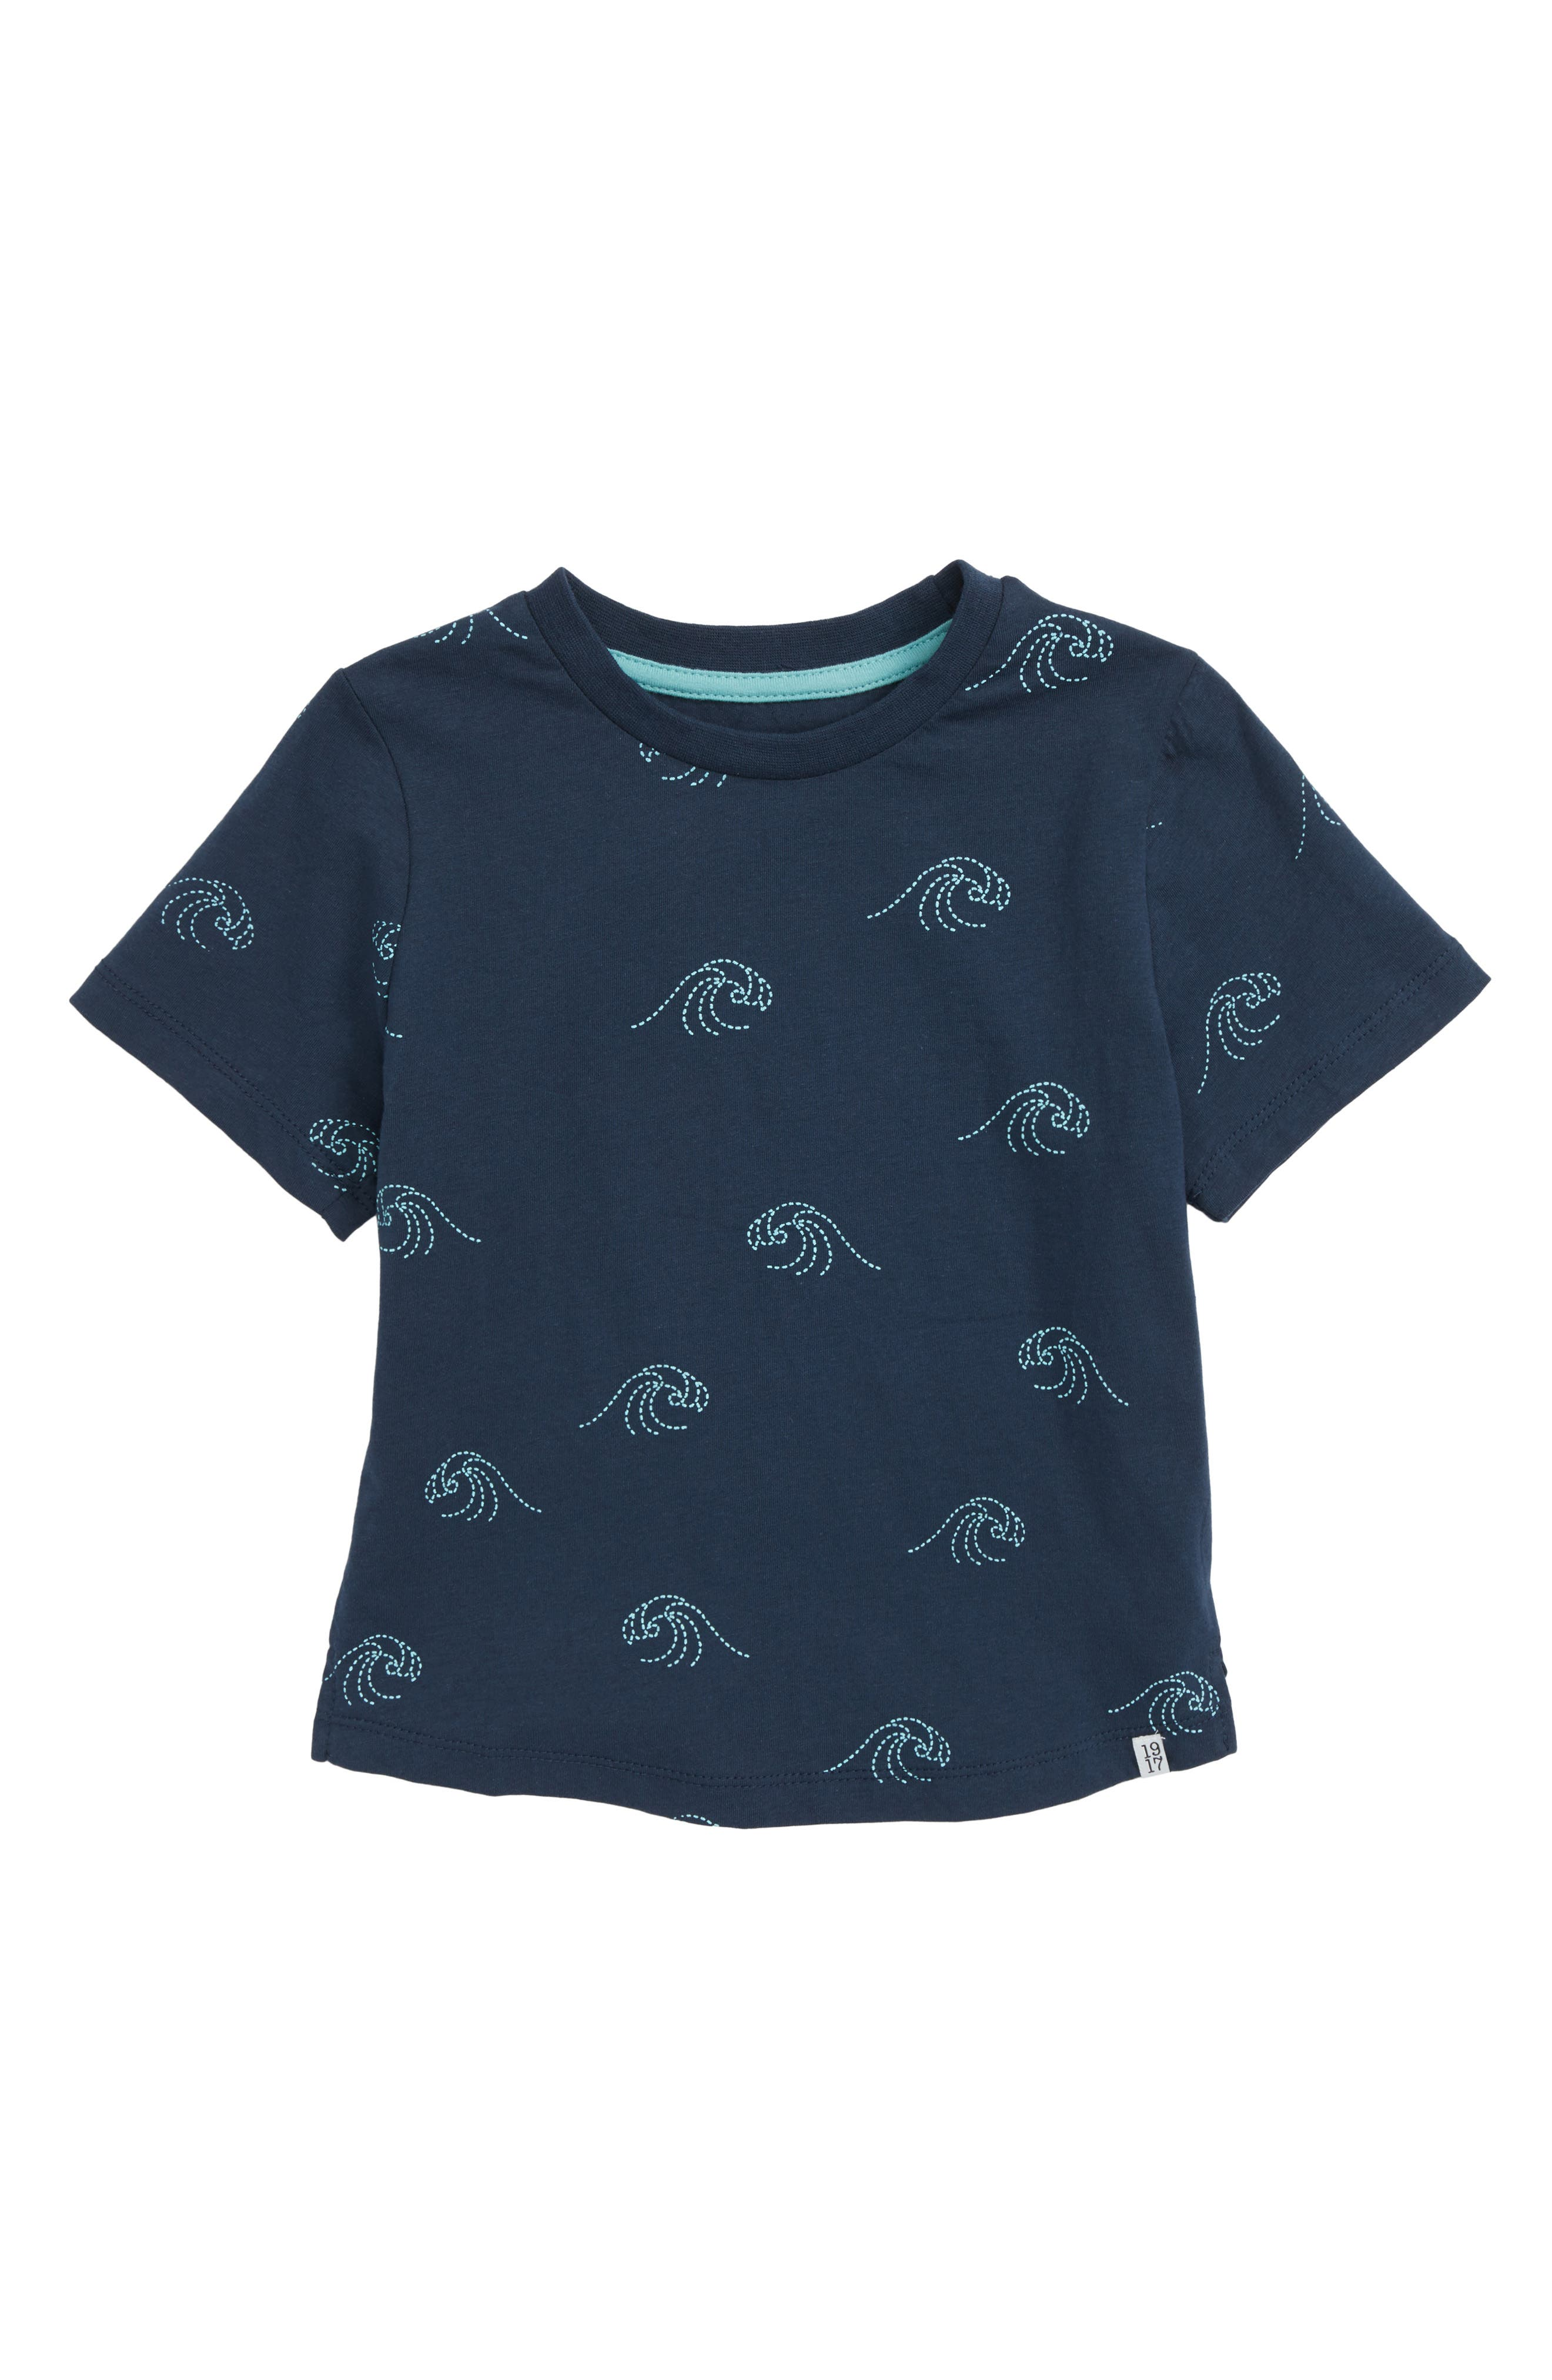 Feel Embroidered T-Shirt,                         Main,                         color, Navy